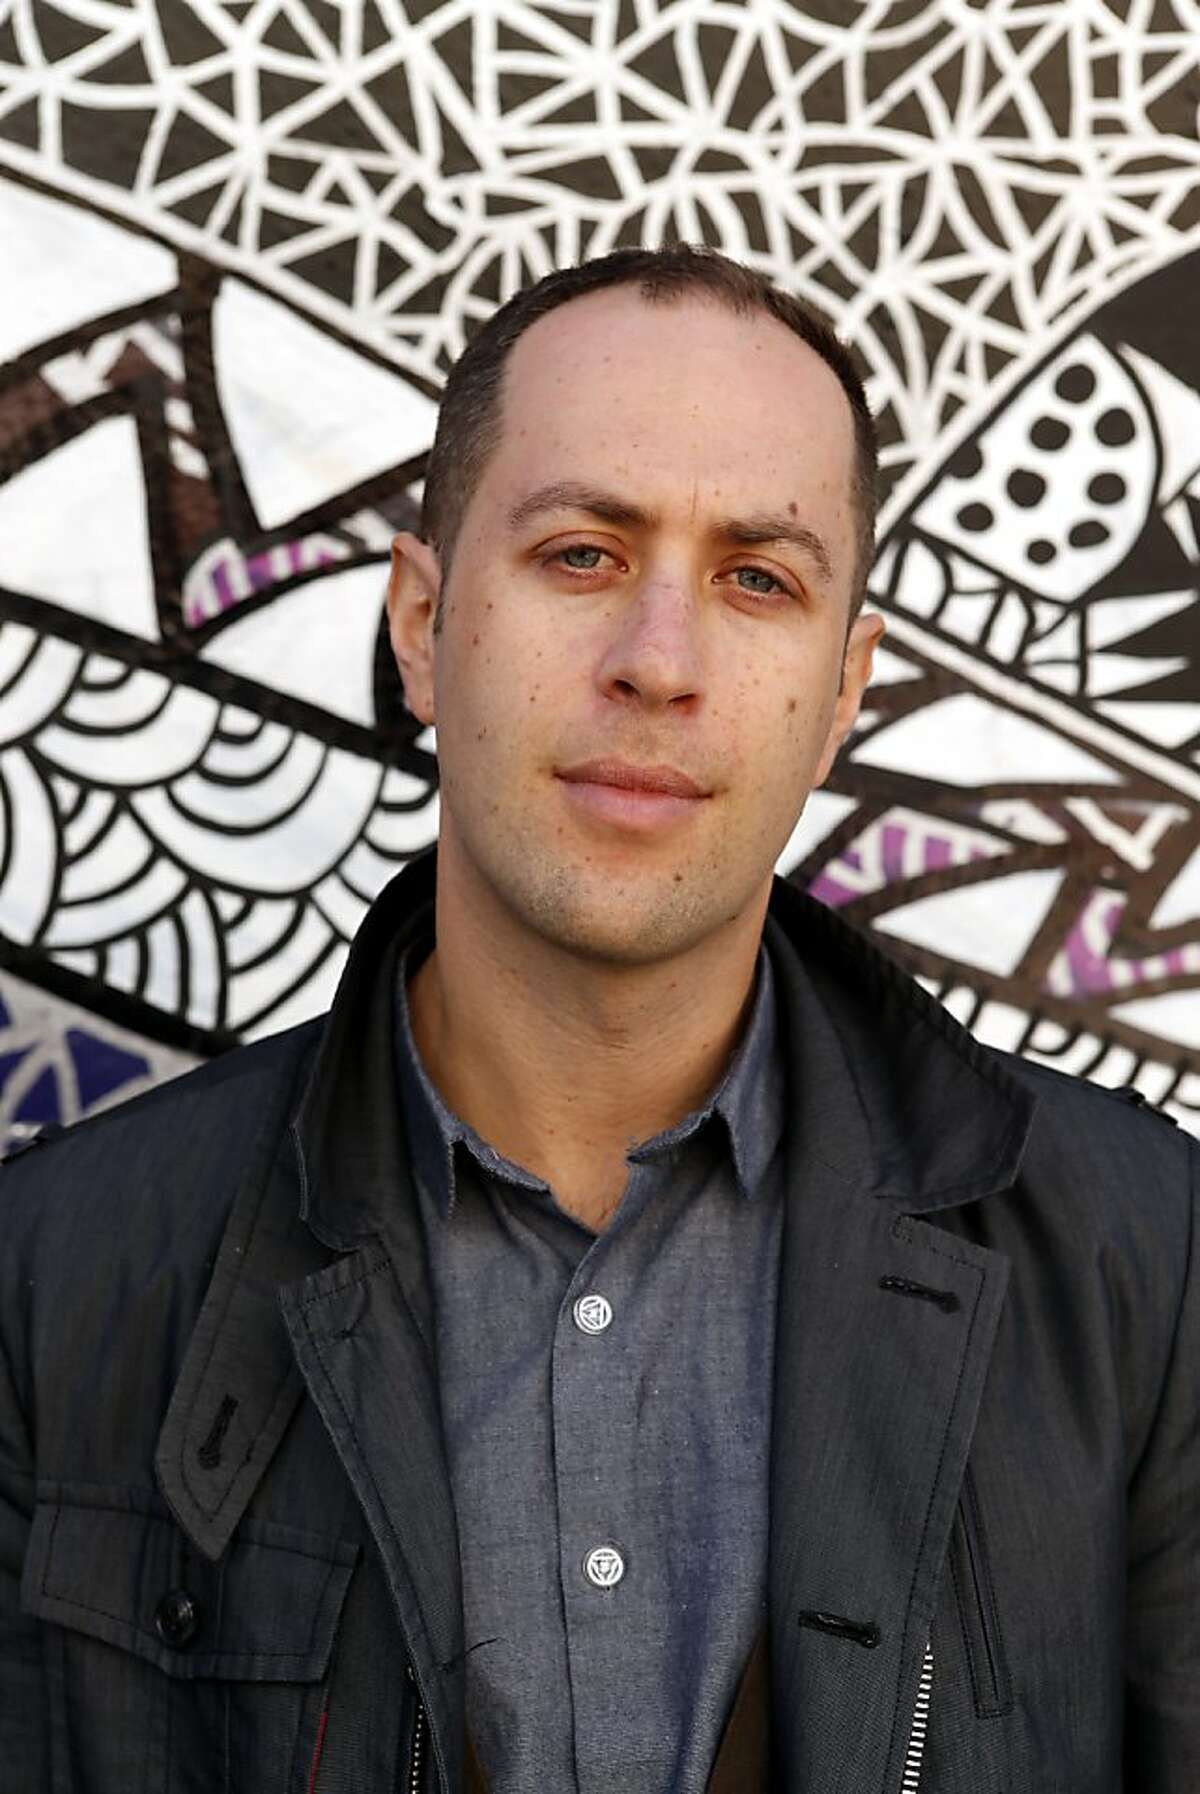 """Berkeley author Adam Mansbach, who had the #1 NYT best seller """"Go the F**K to Sleep,"""" has now written a novel, """"Rage is Back,"""" set in the graffiti world of New York. Mansbach photographed on Tuesday, January 30, 2013 in San Francisco, Calif."""